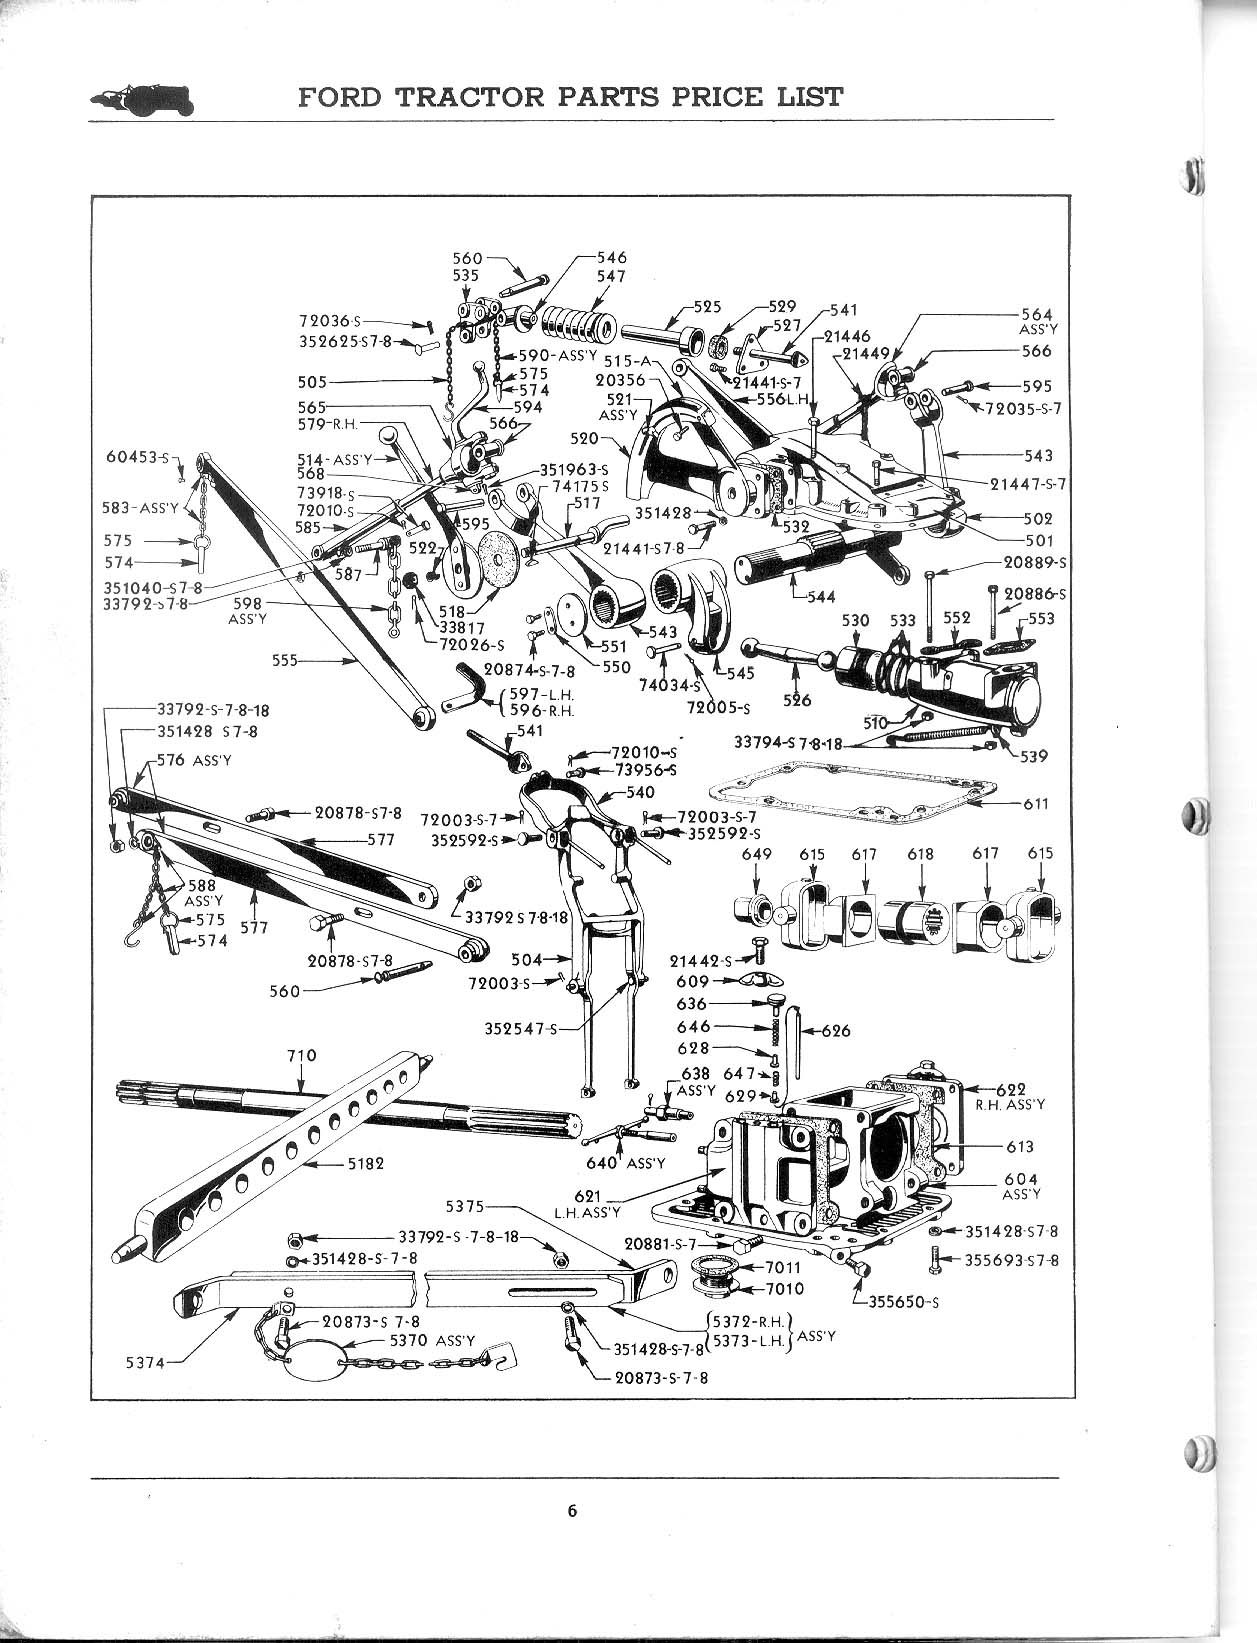 1952 ford 8n wiring diagram  ford  auto fuse box diagram